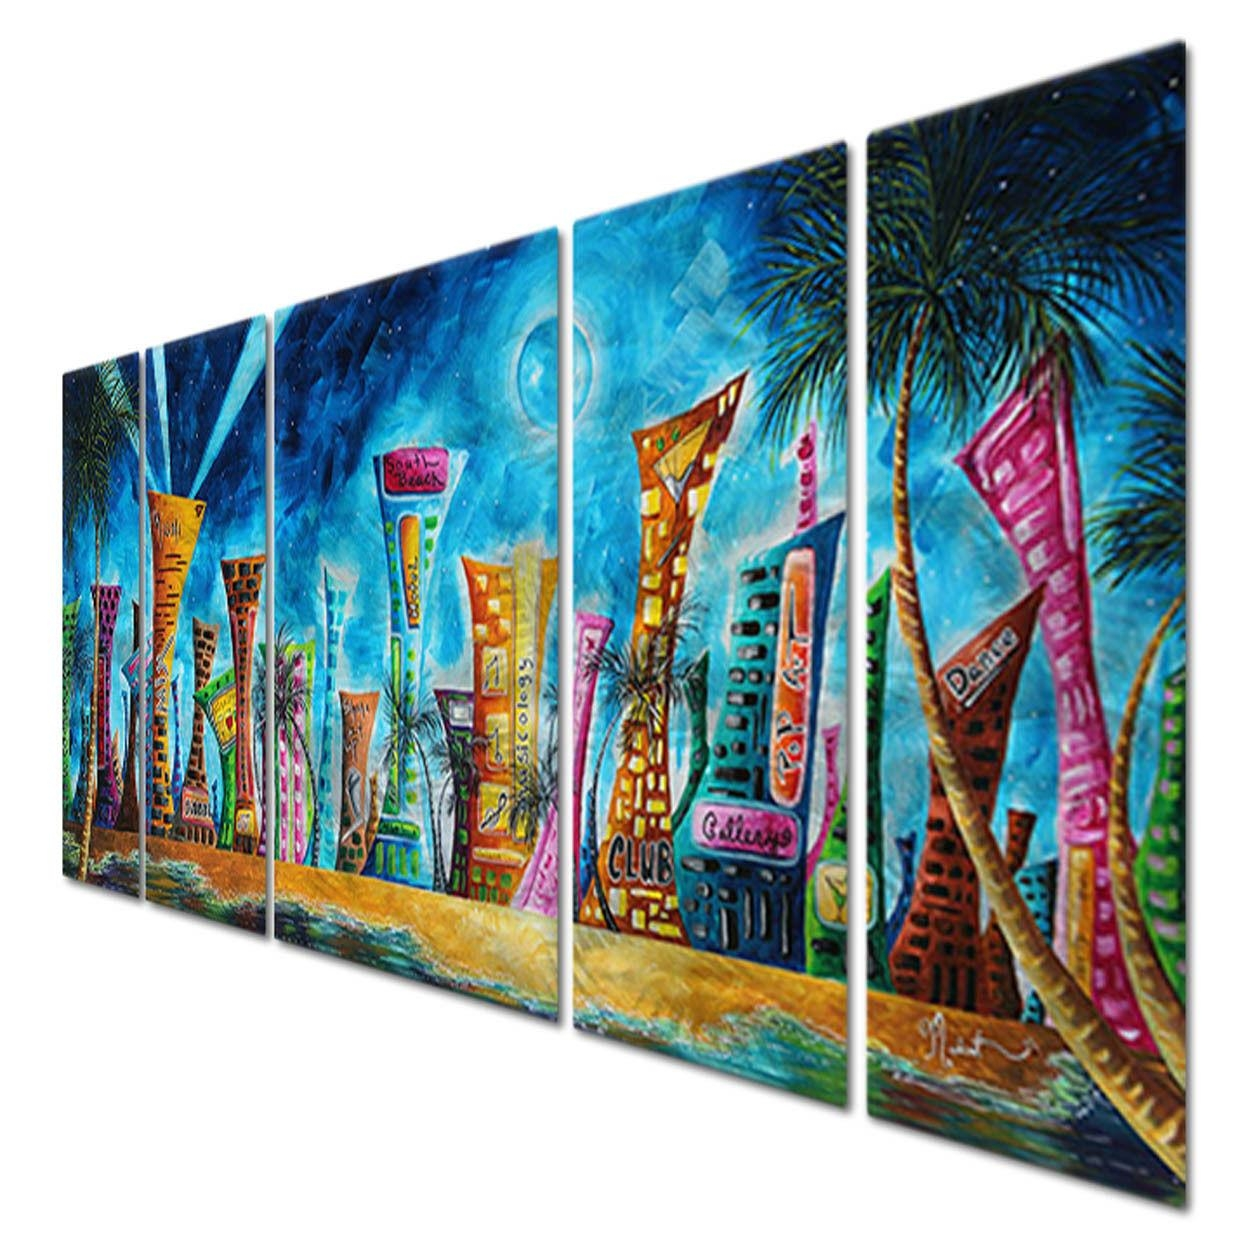 Wall Sculptures , Home Décor , Home & Garden Intended For Megan Duncanson Metal Wall Art (Image 19 of 20)